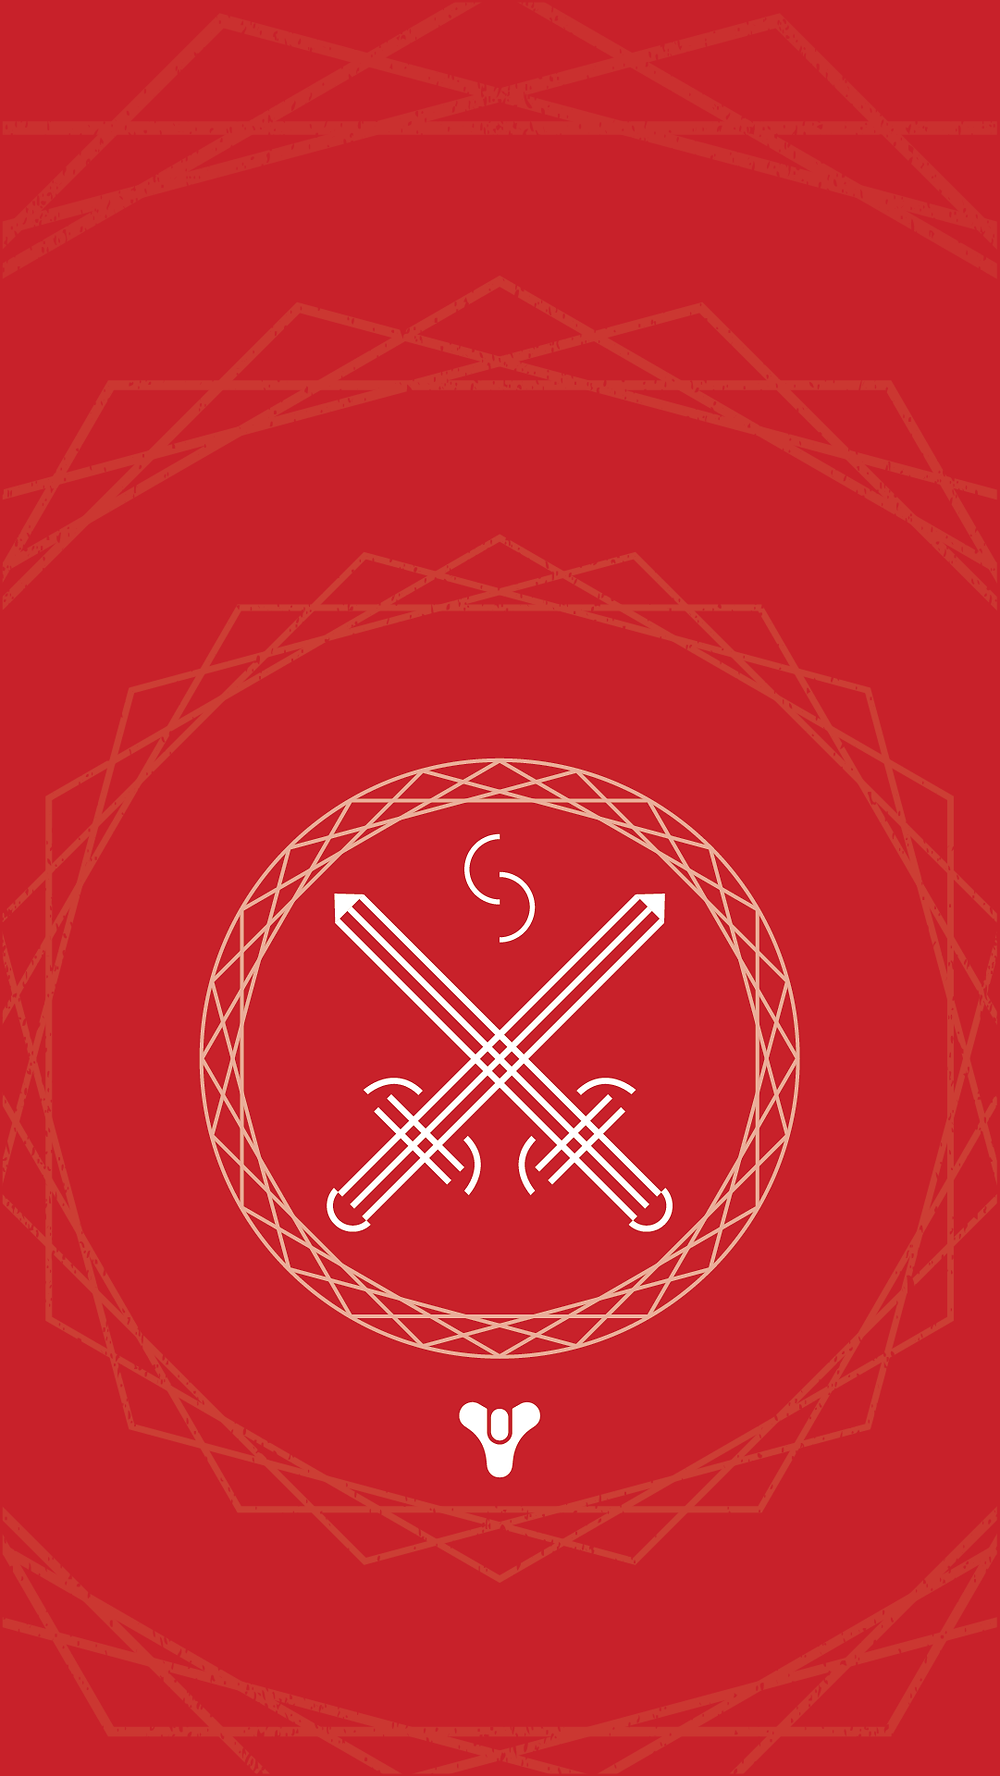 CRUCIBLE (Red) - 1080x1920.png